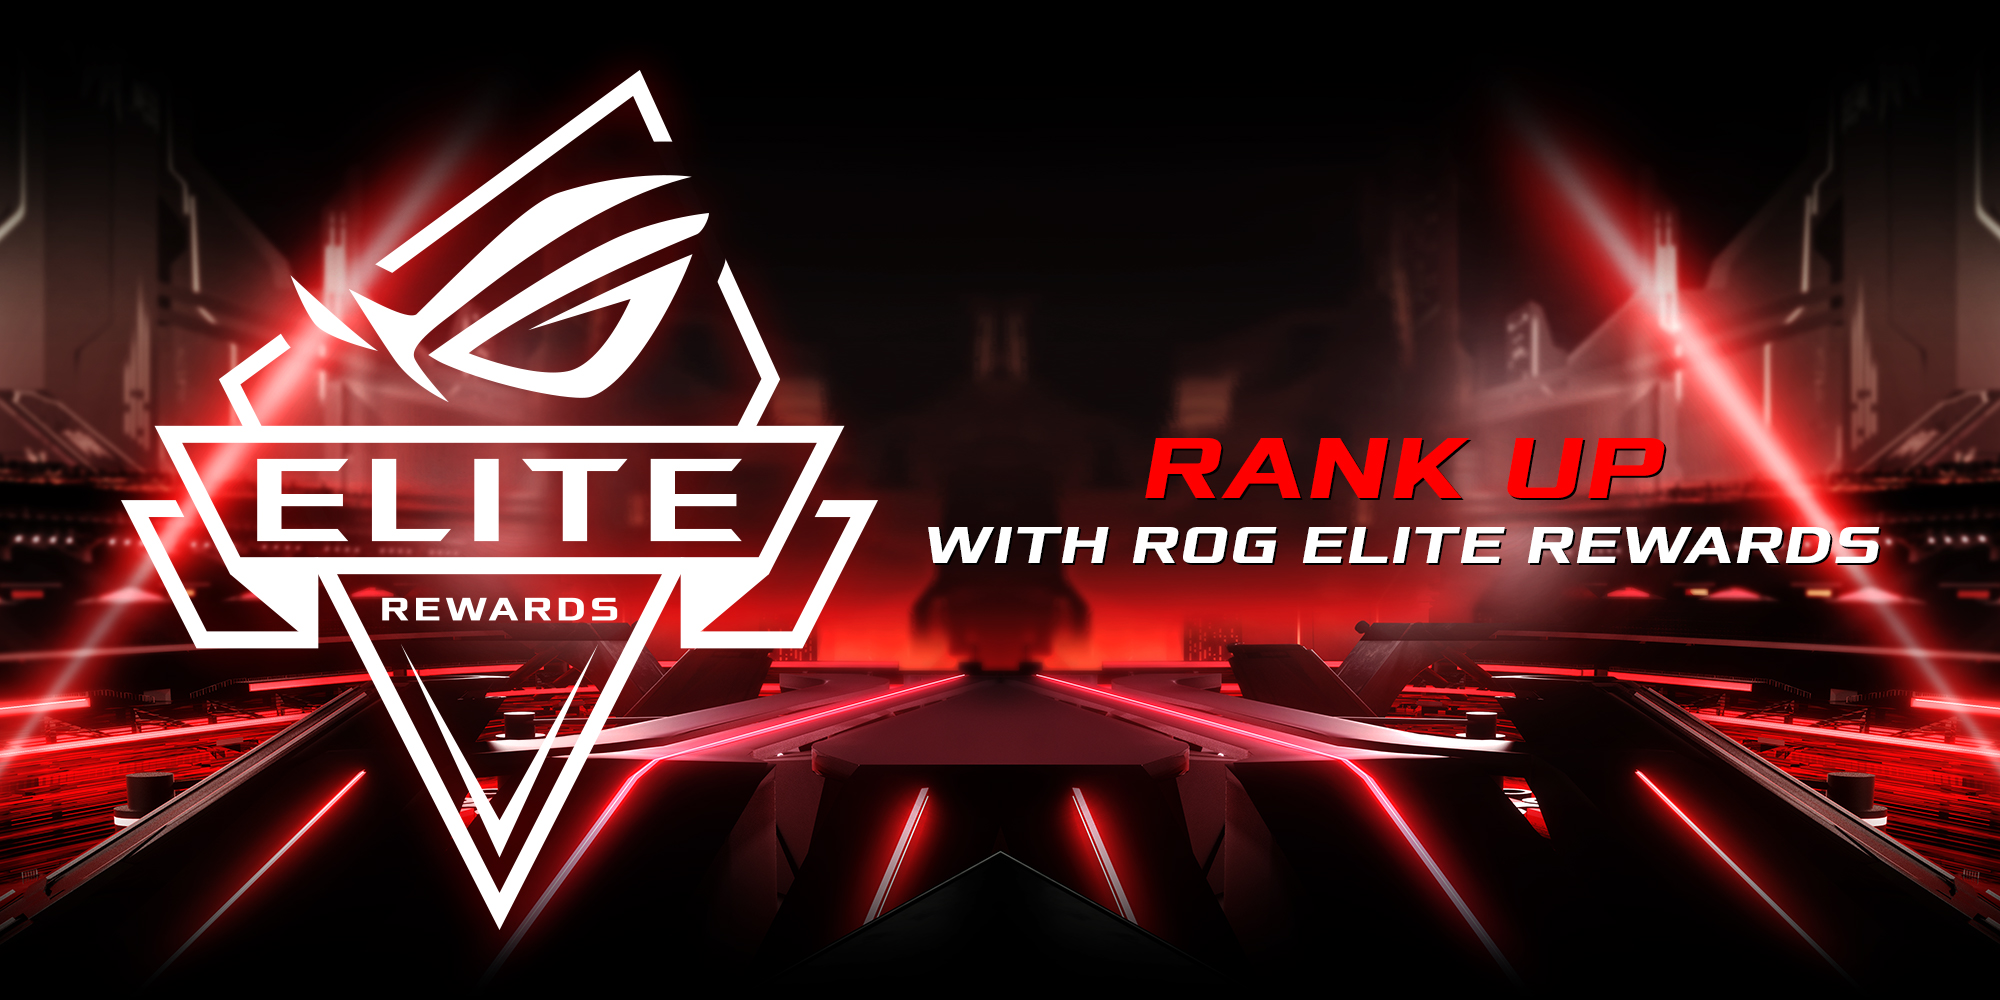 ASUS-2017-ROG_Arena-Announcement_Banners-v1-ROG_Article-2000x1000